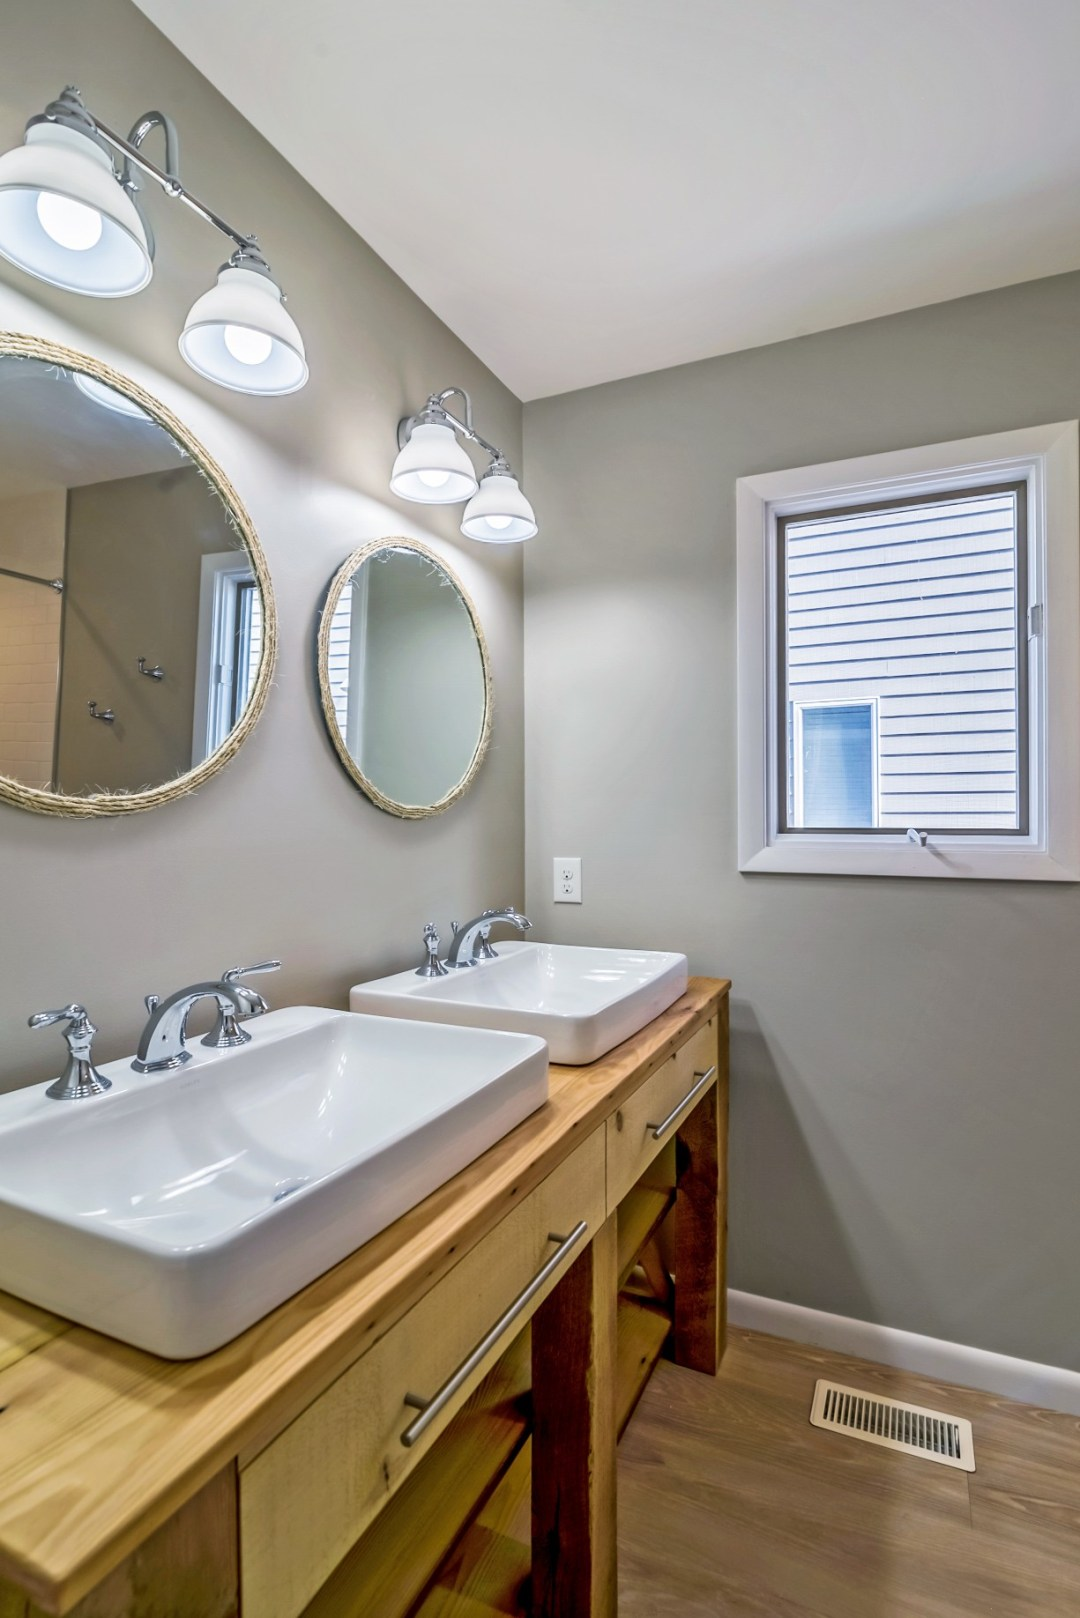 Bathroom Remodel in Wellington Parkway, Bethany Beach DE with Dual Sinks, Two Round Mirrors and Light Wood Vanities